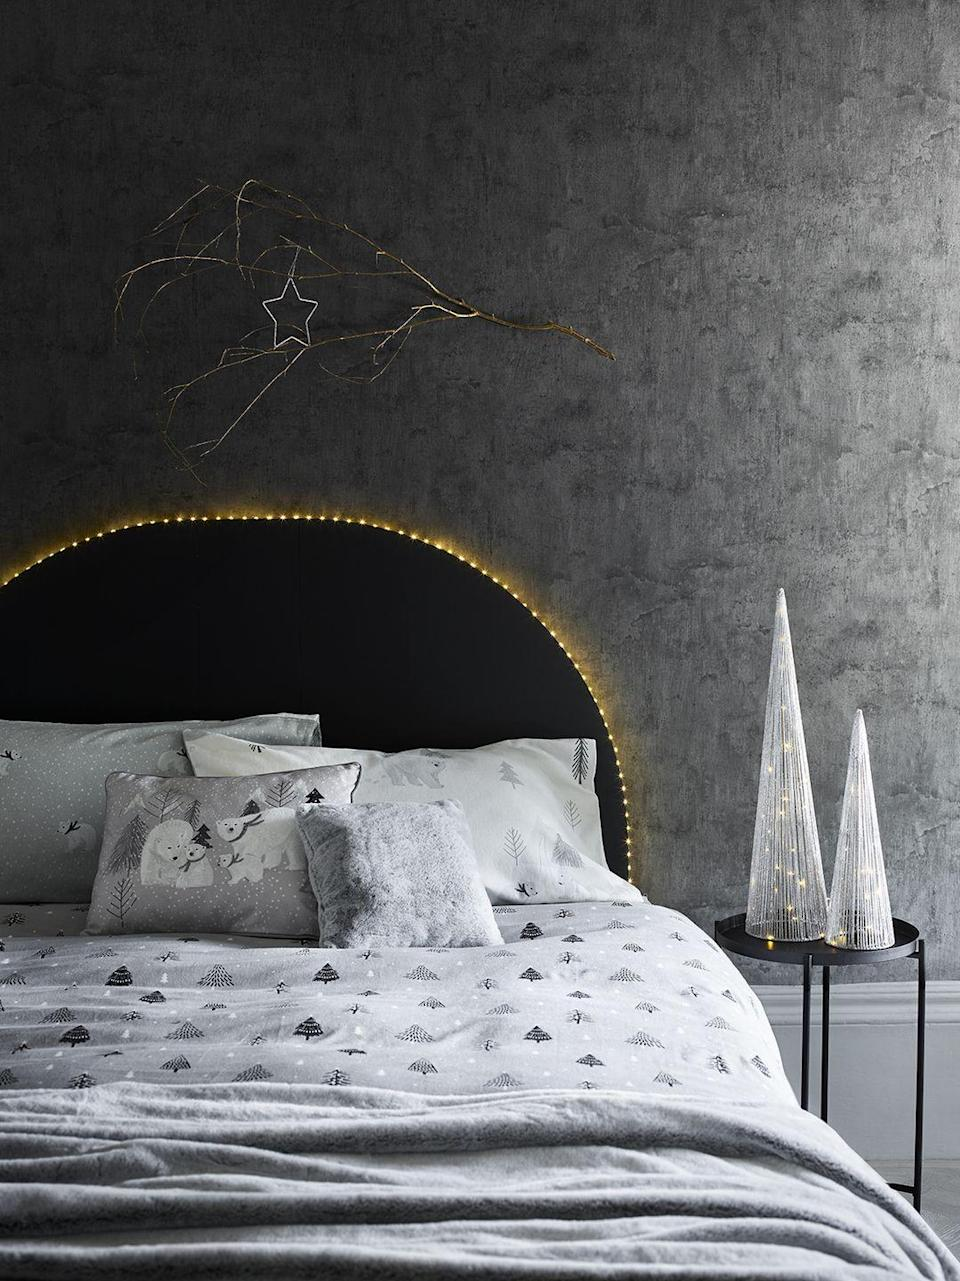 <p>Prioritise your sleep over the holidays by picking up soft new bedlinen, sumptuous throws and cosy cushions to curl up with. </p><p>'Blacks, greys and deep purples blend with metallic sheens and iridescent finishes to give a moody yet luminous finish to the 'Nocturnal' trend,' Julie says. </p>